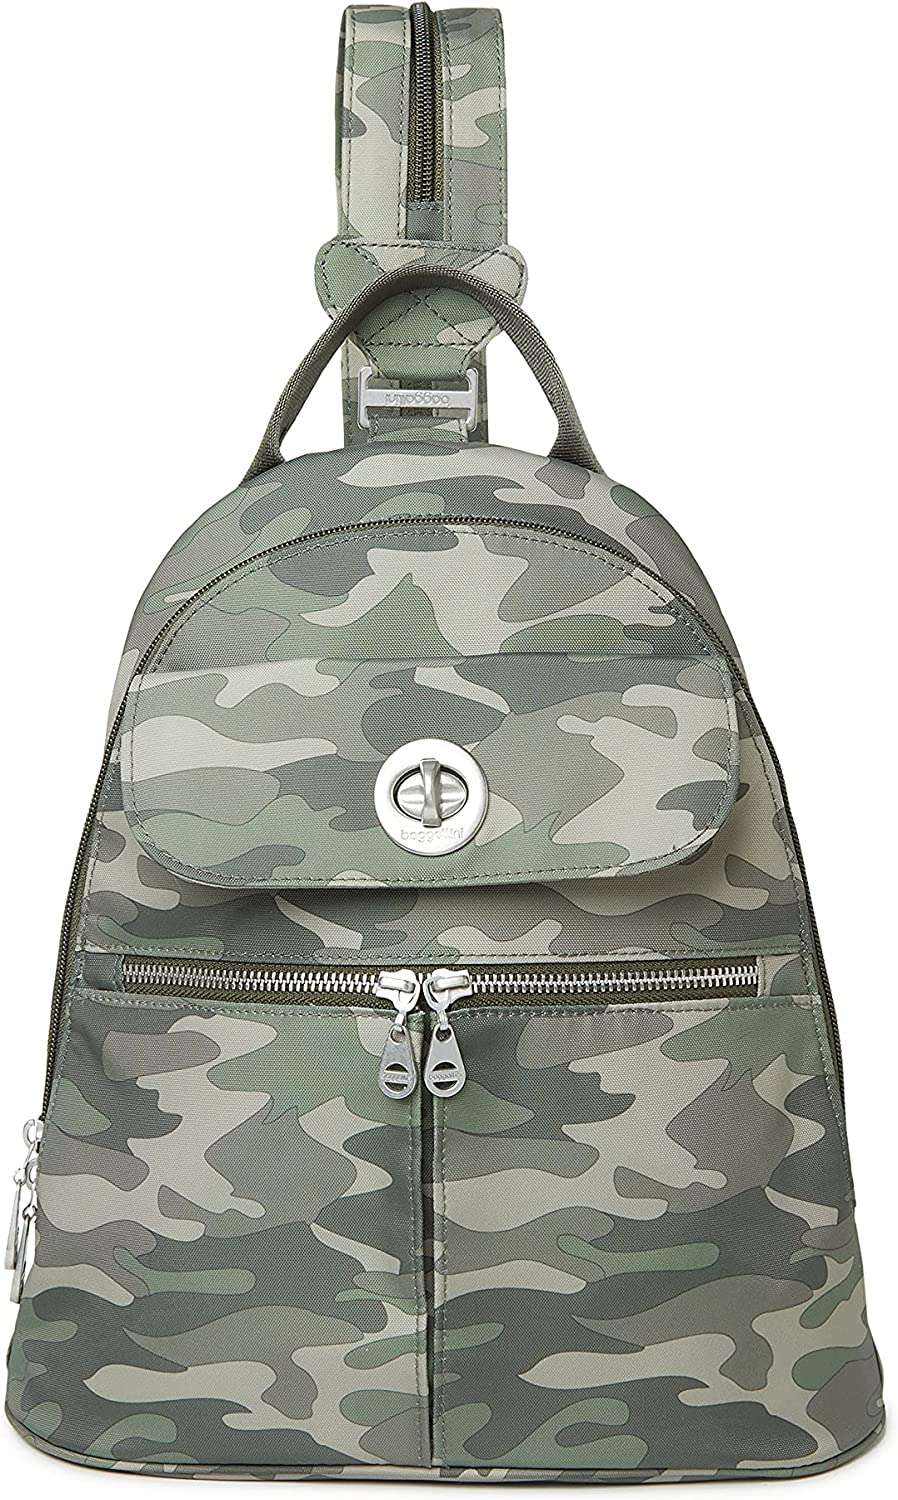 Baggallini Naples Convertible Backpack Max 40% Weekly update OFF